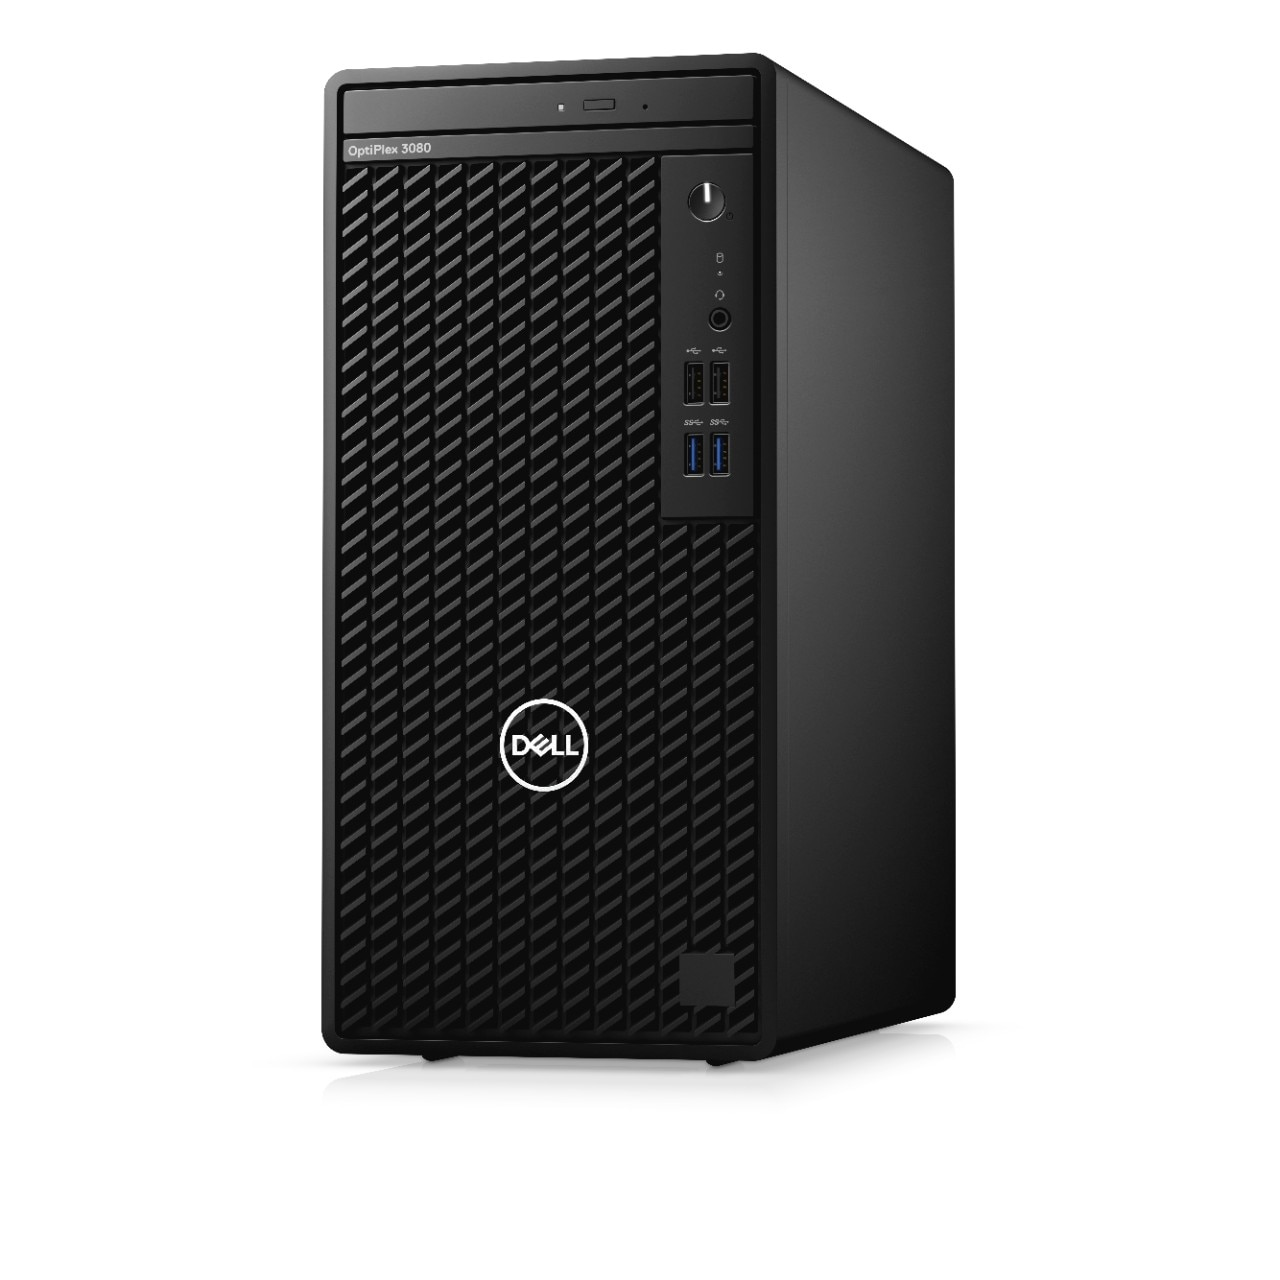 OptiPlex 3080 Mini Tower